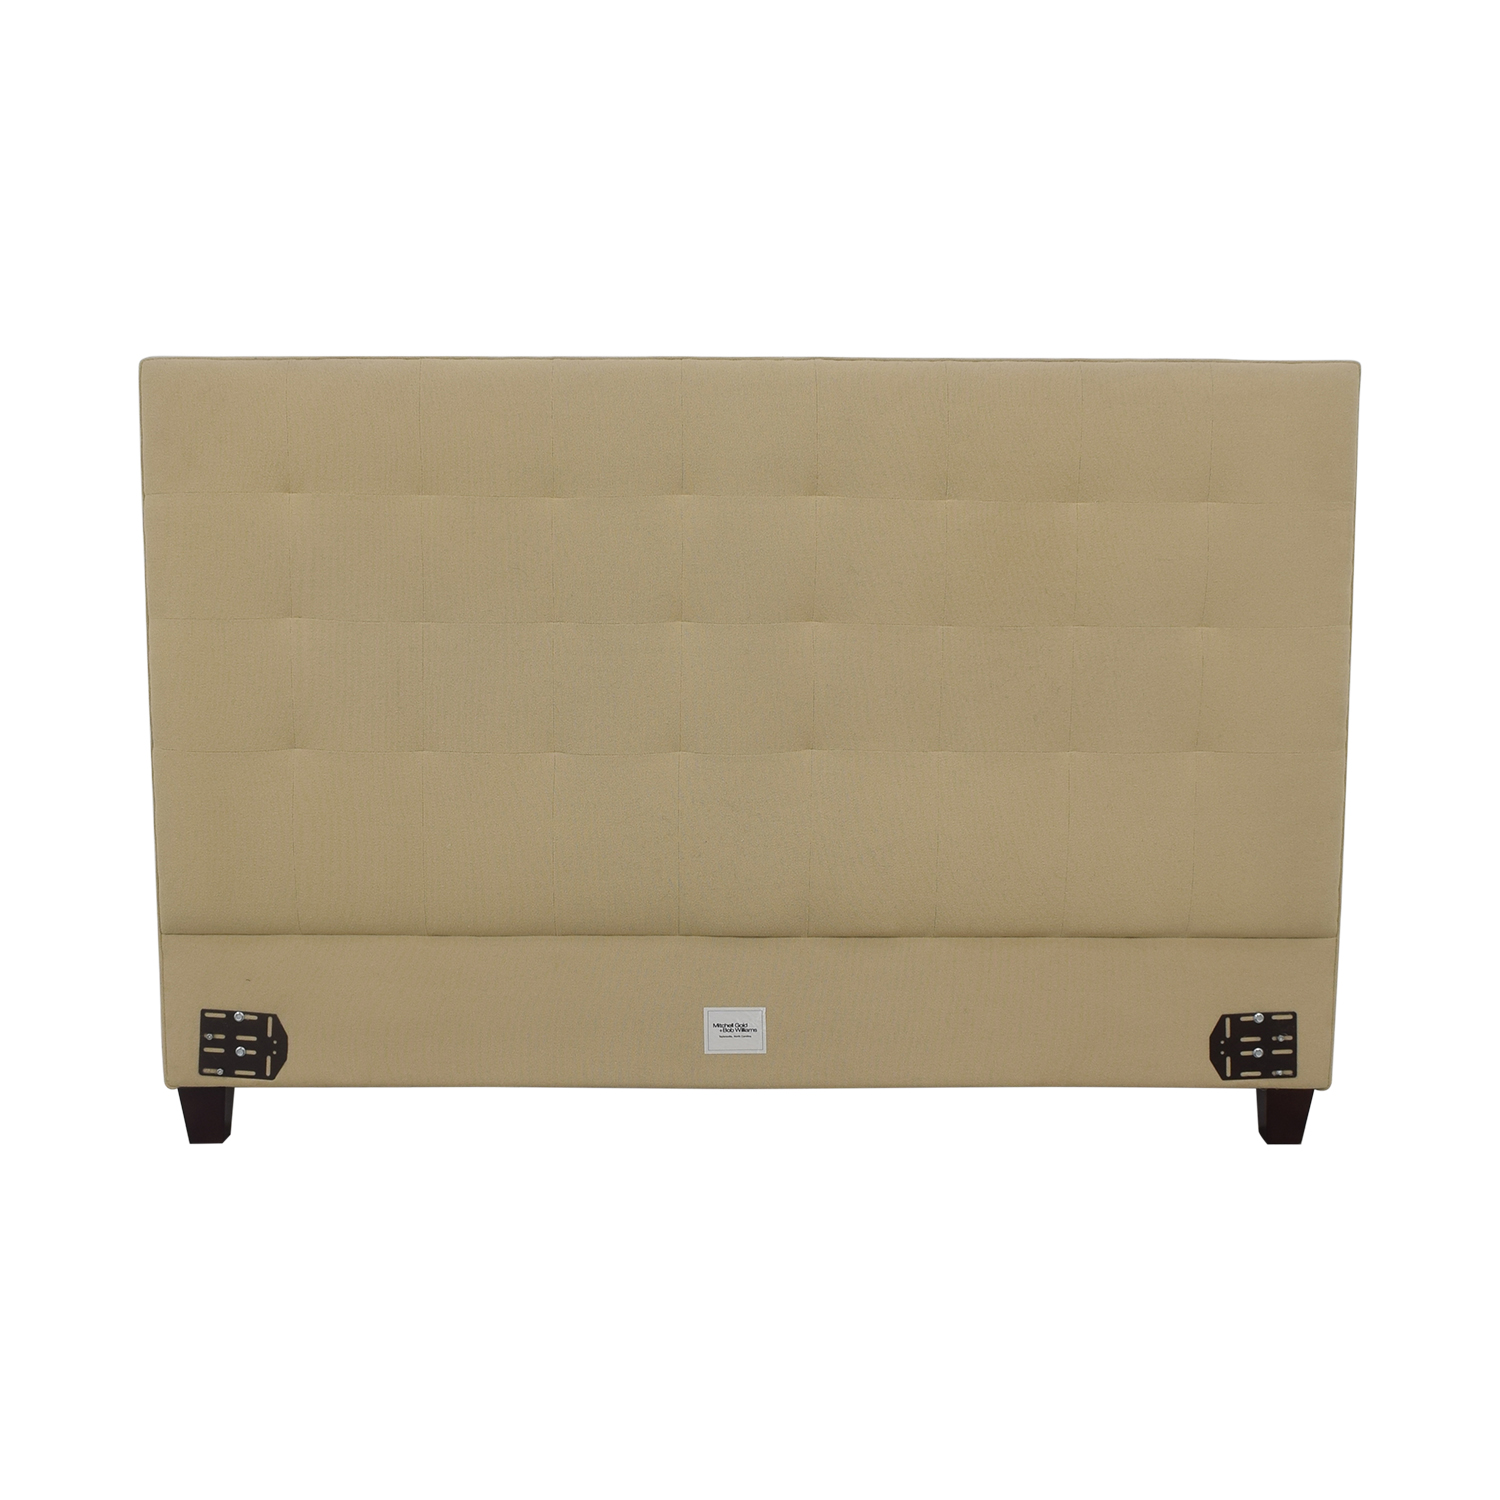 Mitchell Gold + Bob Williams Mitchell Gold + Bob Williams Tufted King Headboard price